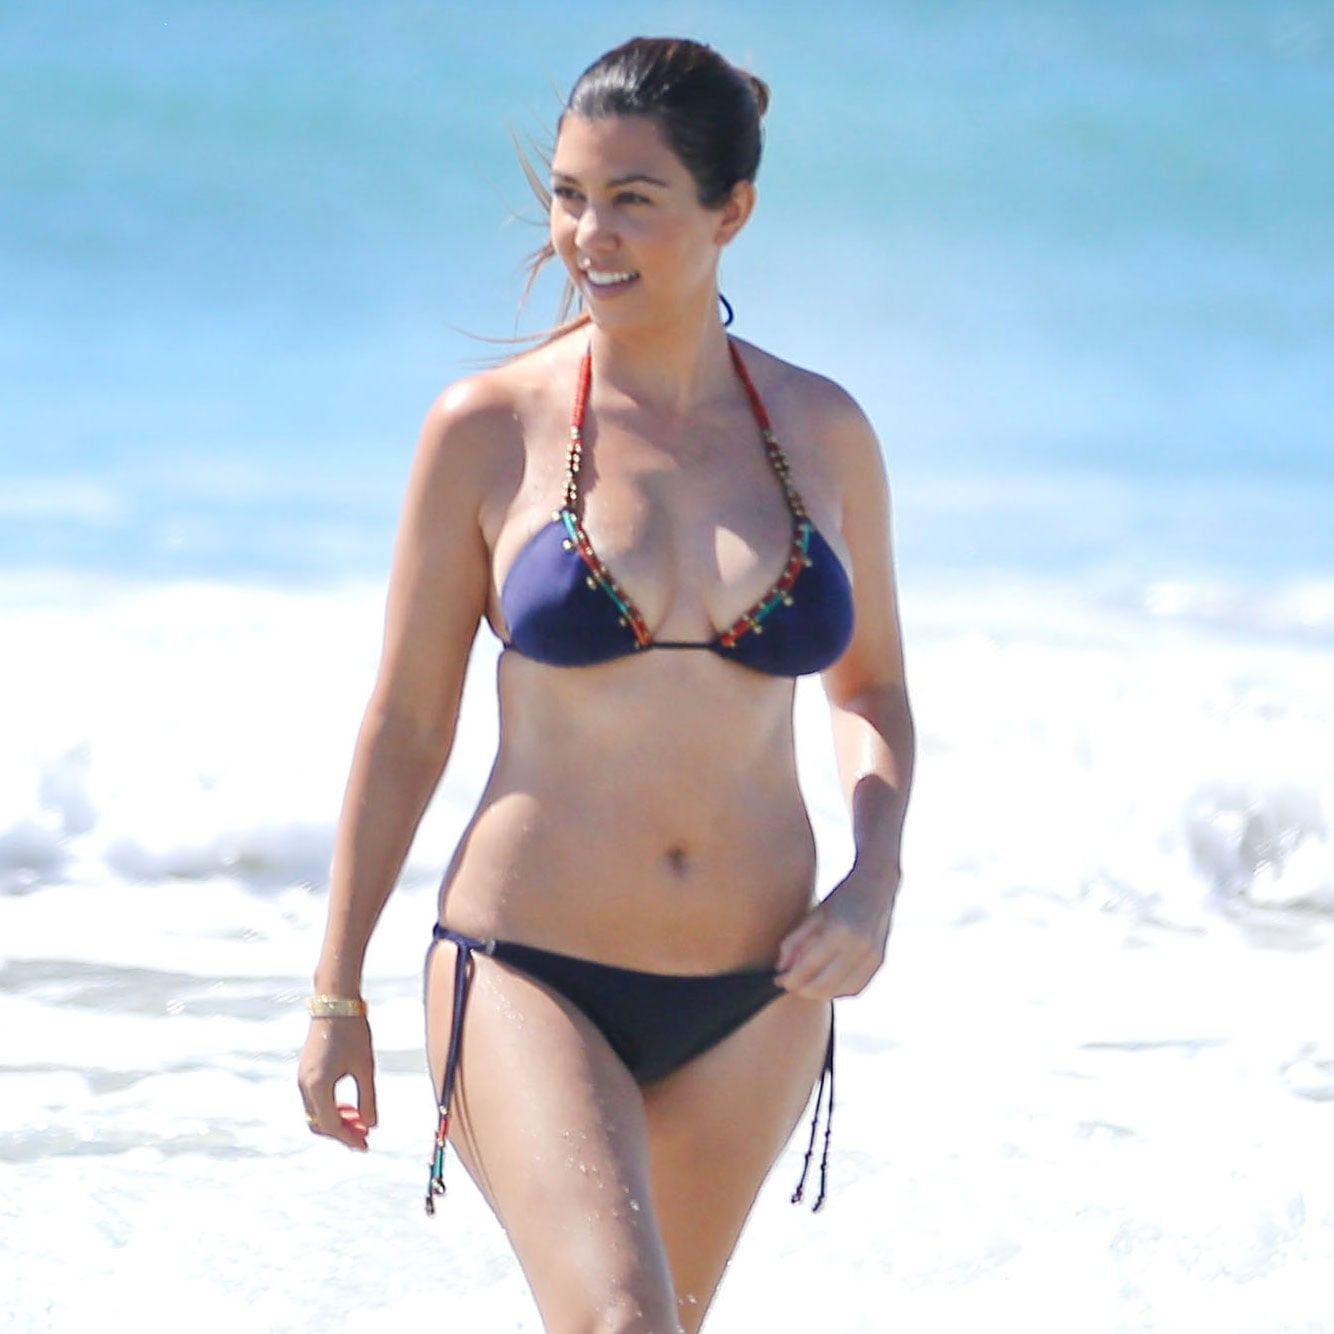 With her voluptuous body and Black hairtype without bra (cup size 34D) on the beach in bikini